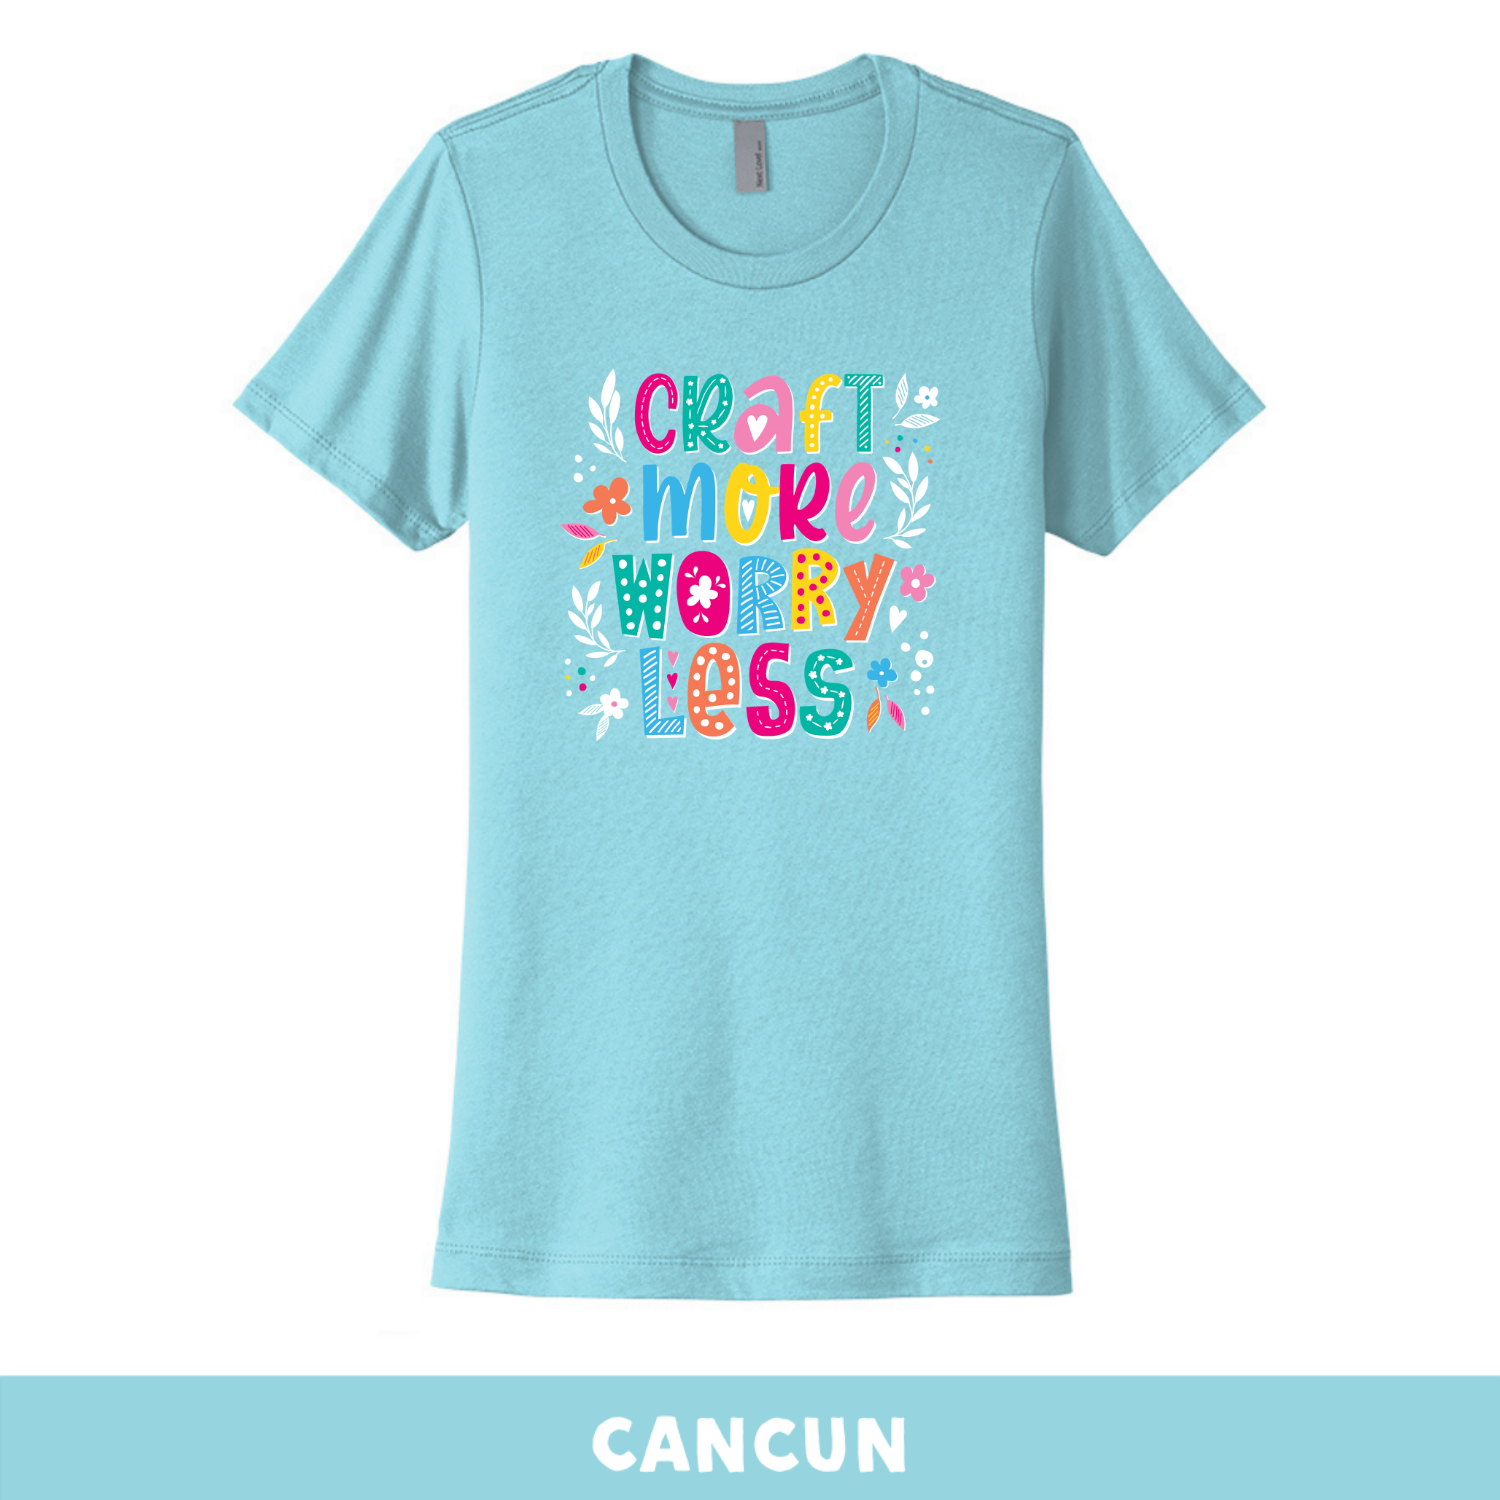 Cancun - Crew Neck Boyfriend Tee - Craft More Worry Less